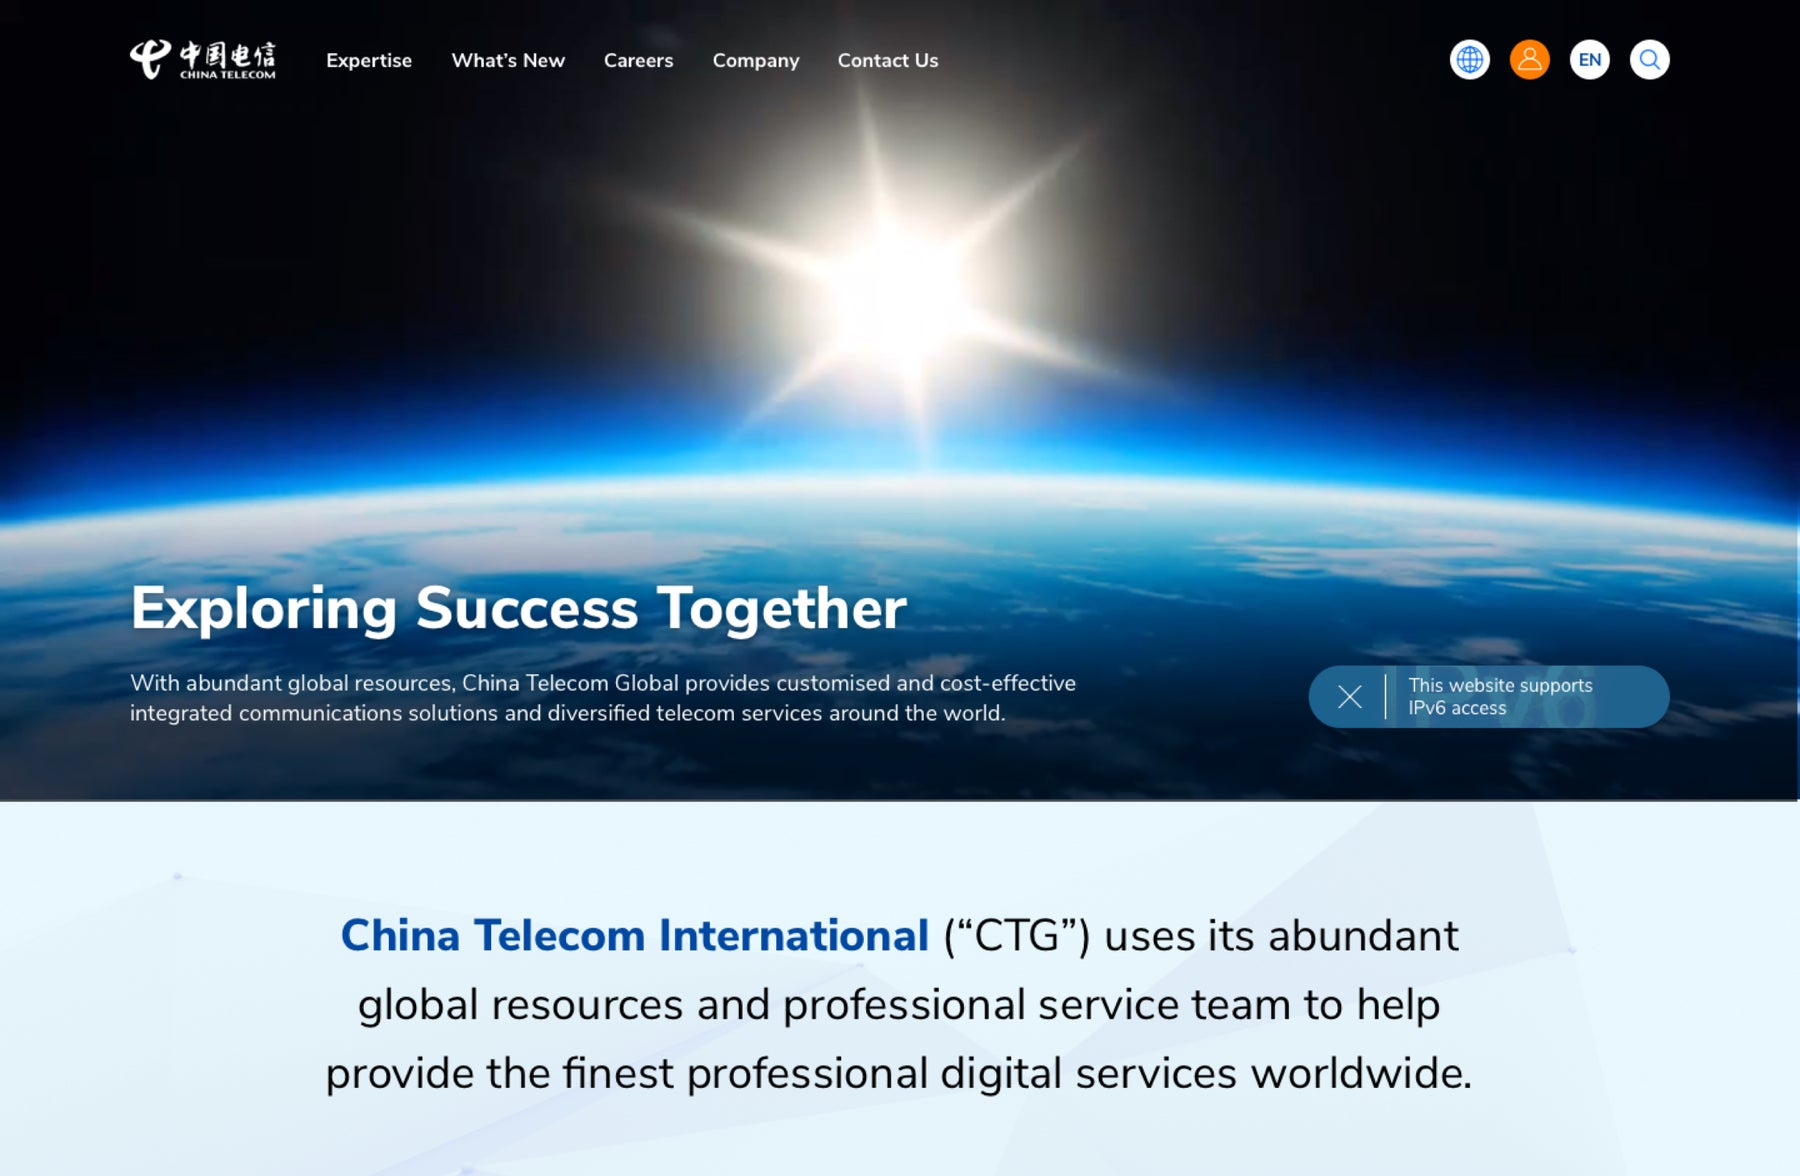 Bringing China's preeminent network to the world stage.